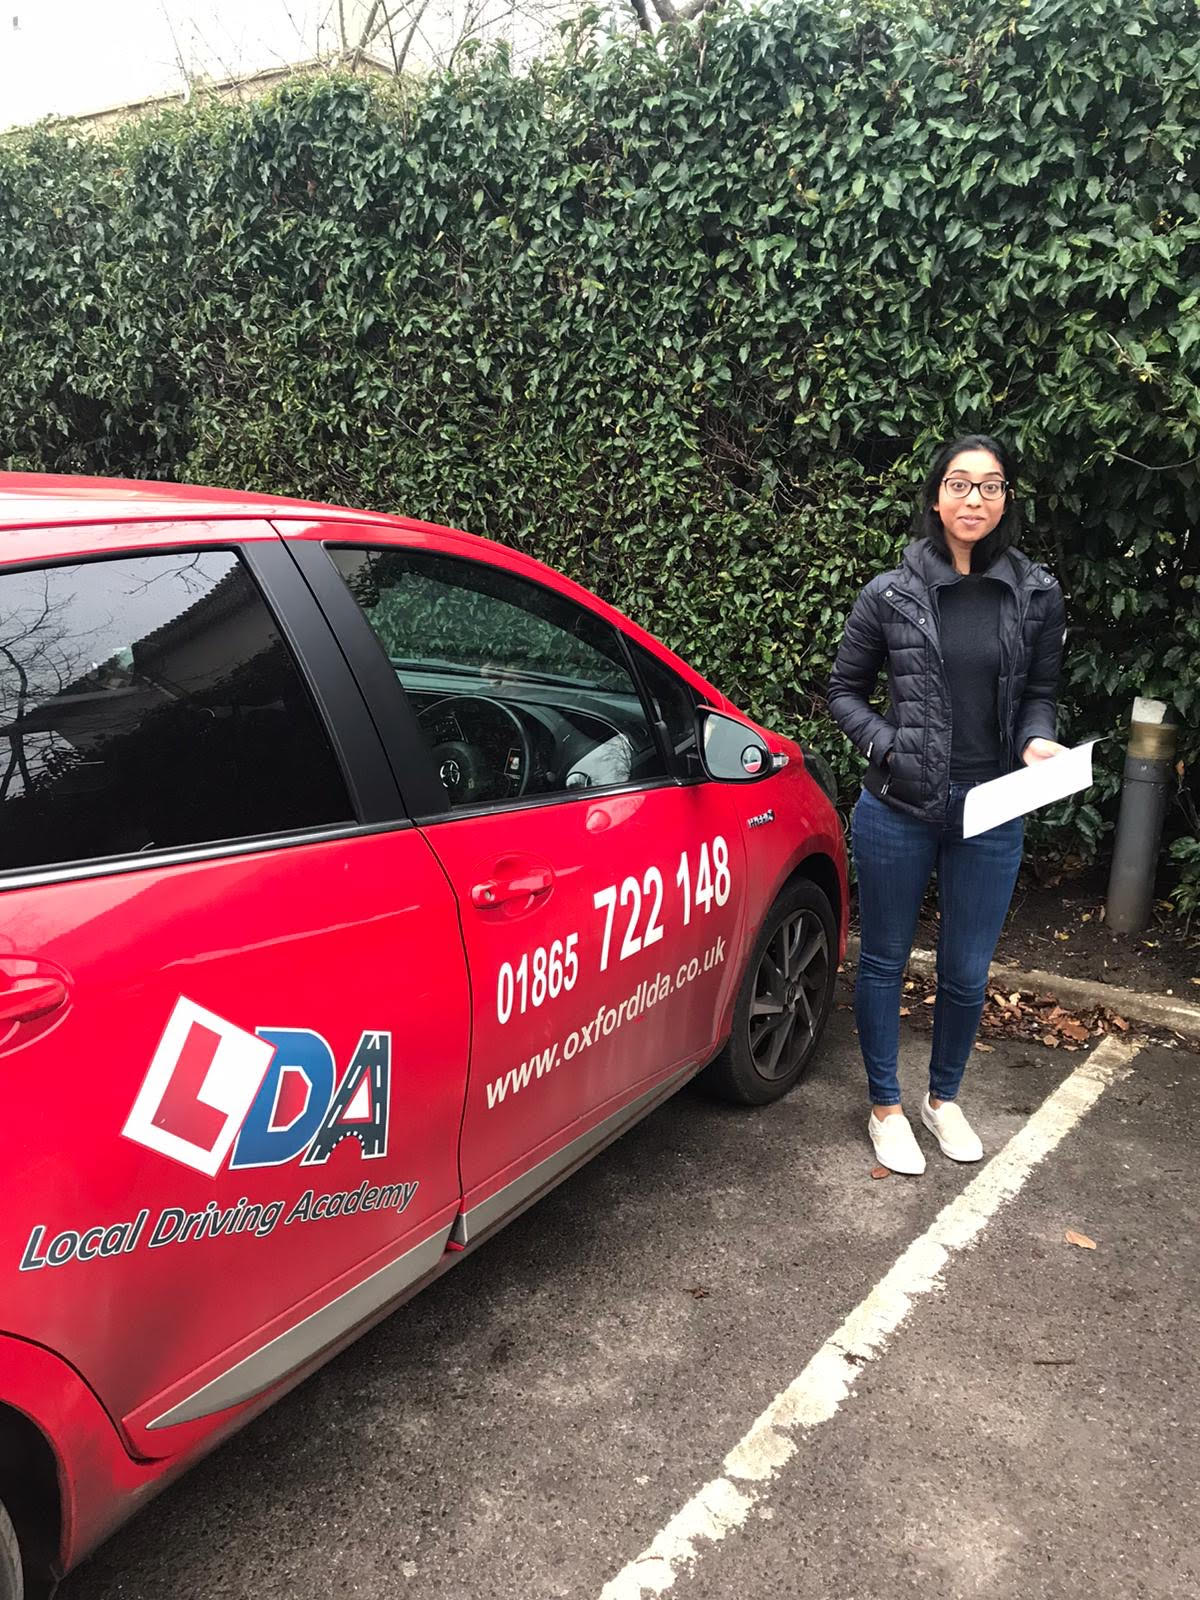 Intensive Driving Lessons Instructor Oxford Automatic Cheap Driving Lessons Oxford Intentive Week Course Nervous Driver Student Discount Block Booking